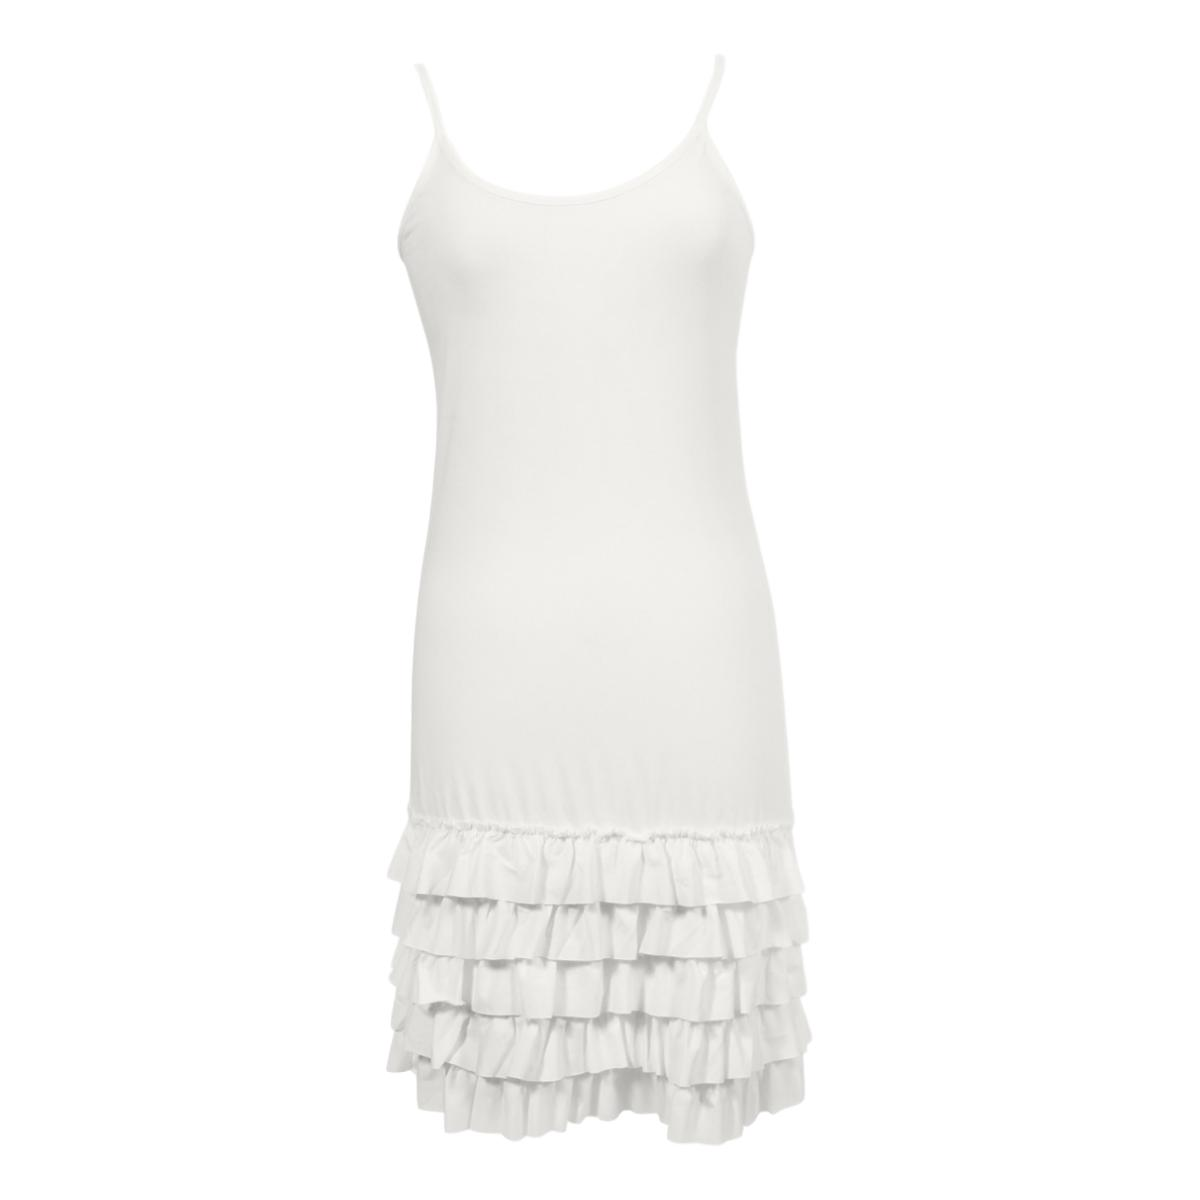 Delicious Frilly Strap Slip Dress | white, strap slips & dresses, Peekaboo Chic | Modest Layering Apparel for women